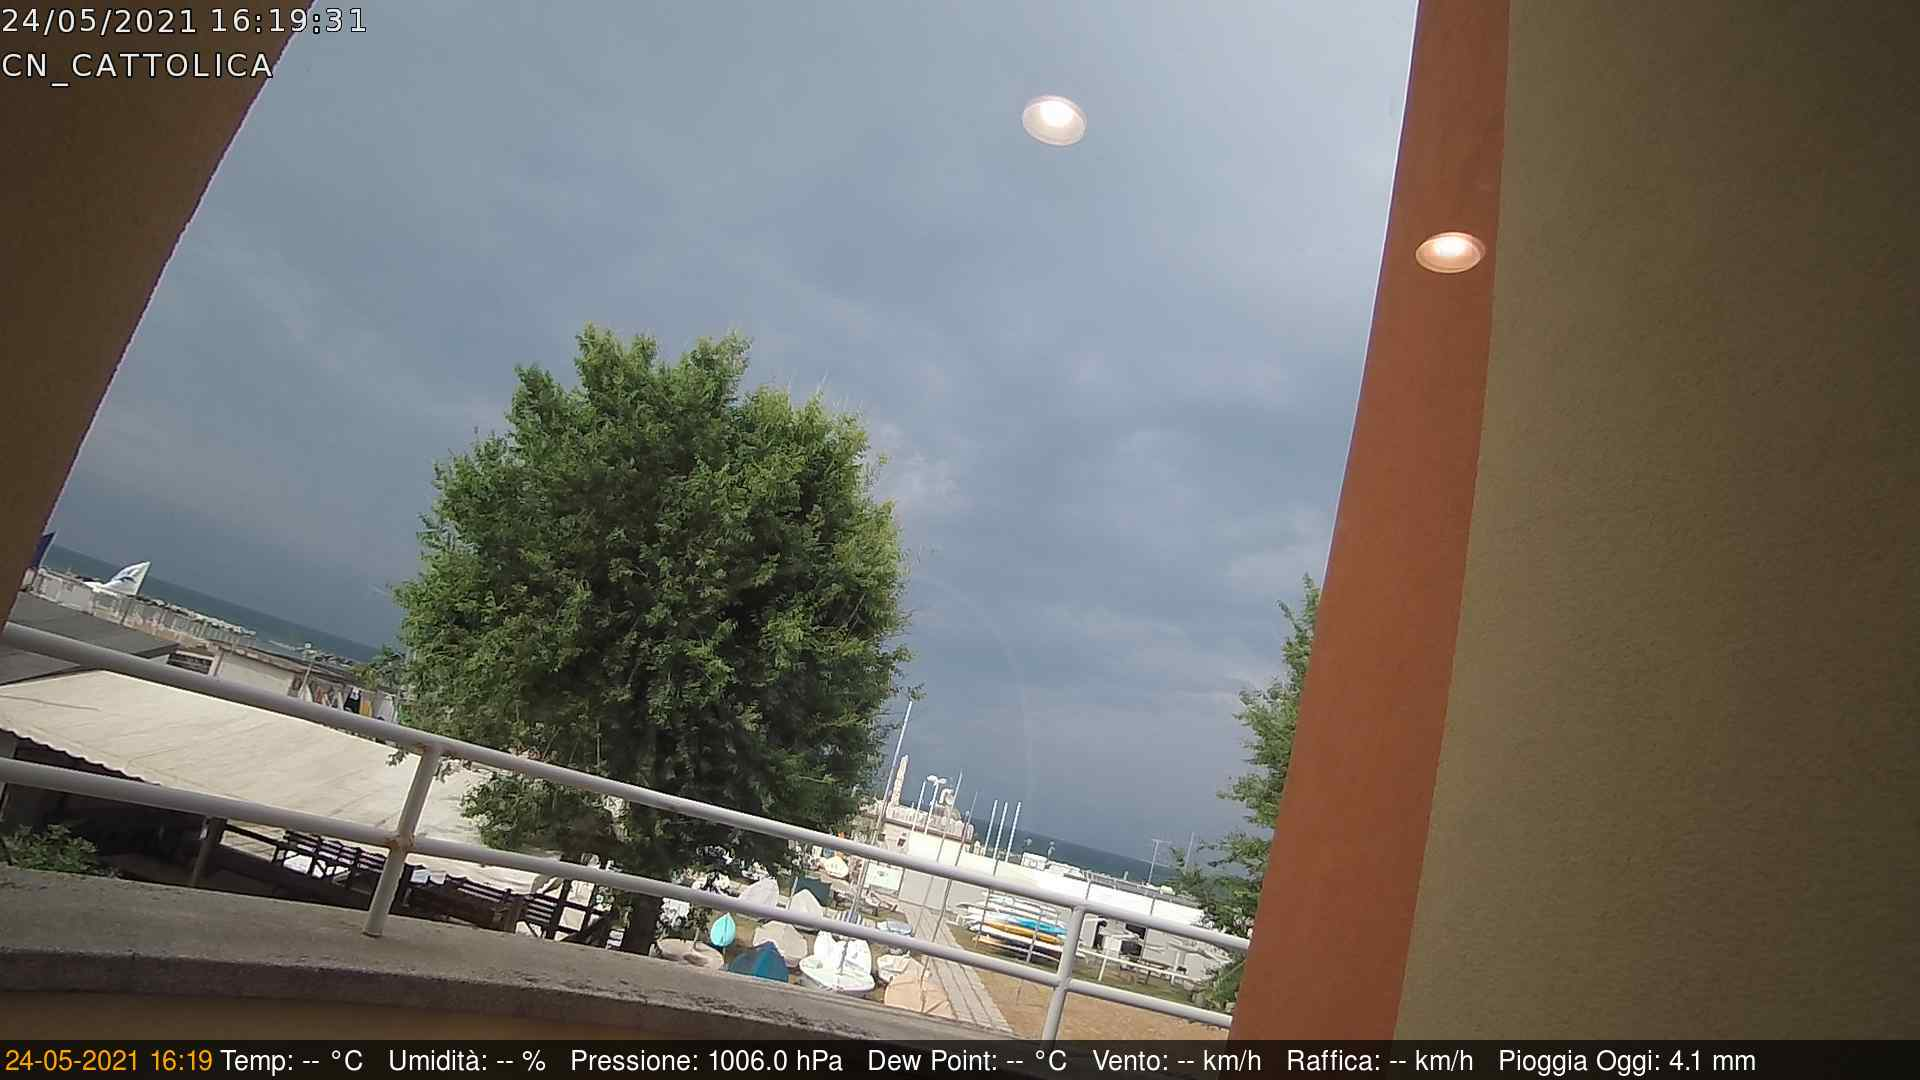 Webcam gestita da meteobridge